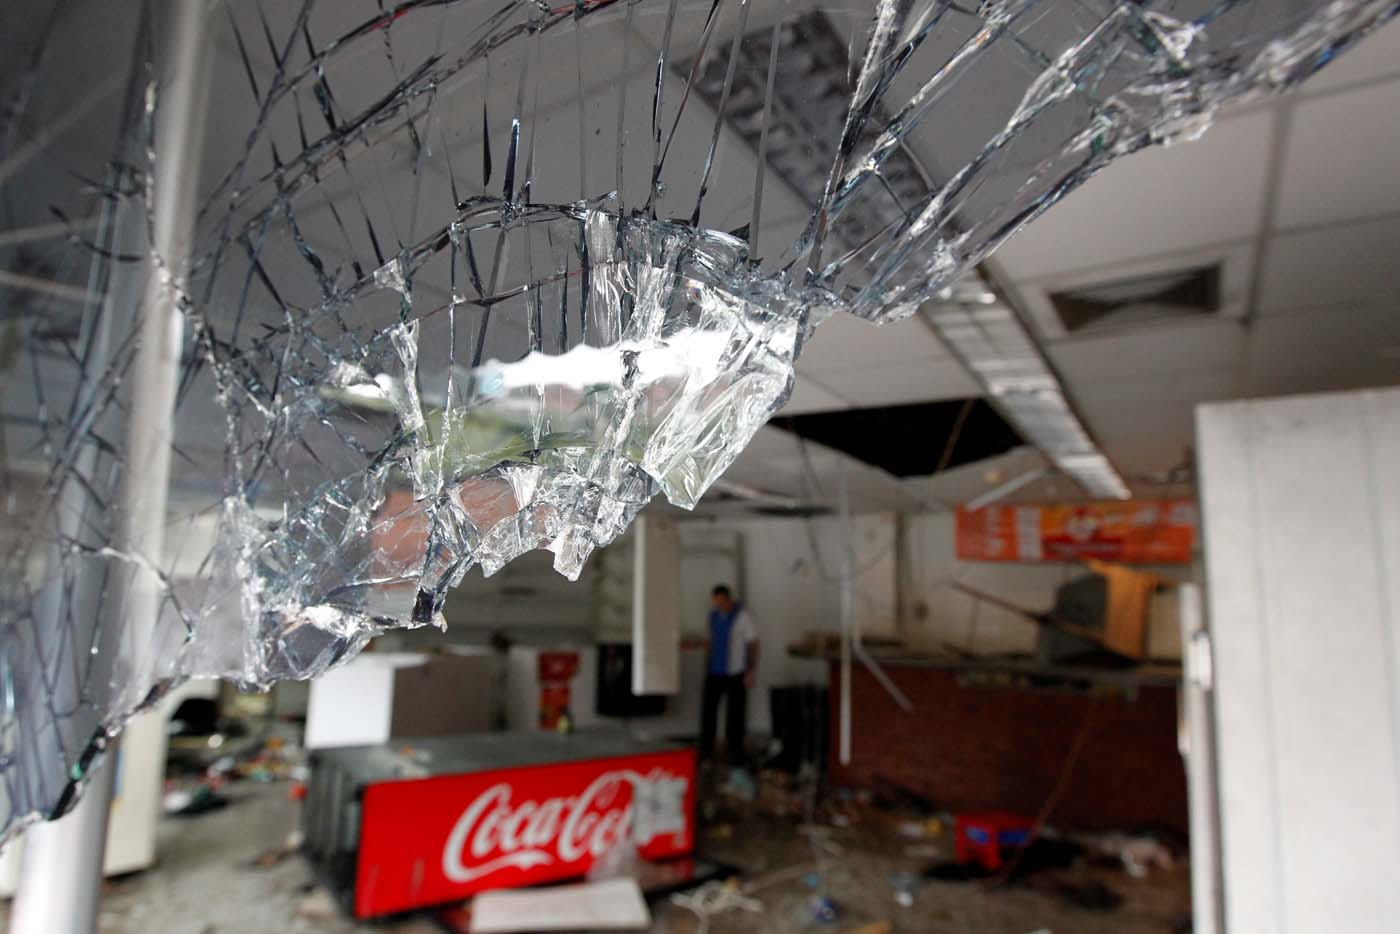 Broken glass is seen in a convenience store, after it was looted in Caracas, Venezuela April 21, 2017. REUTERS/Christian Veron